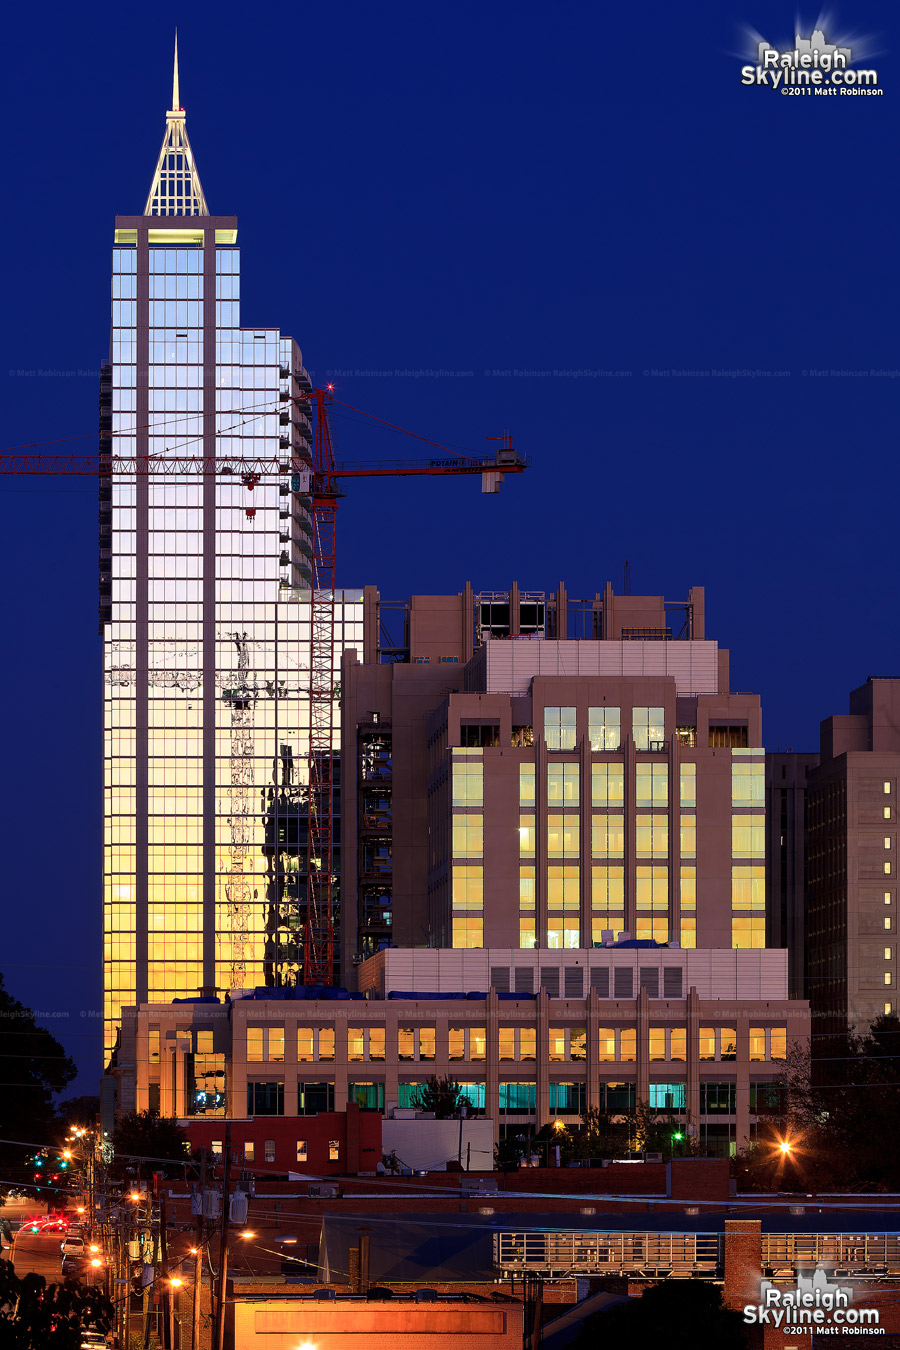 RBC Plaza and the Wake County Justice Center reflect the western sky after sunset